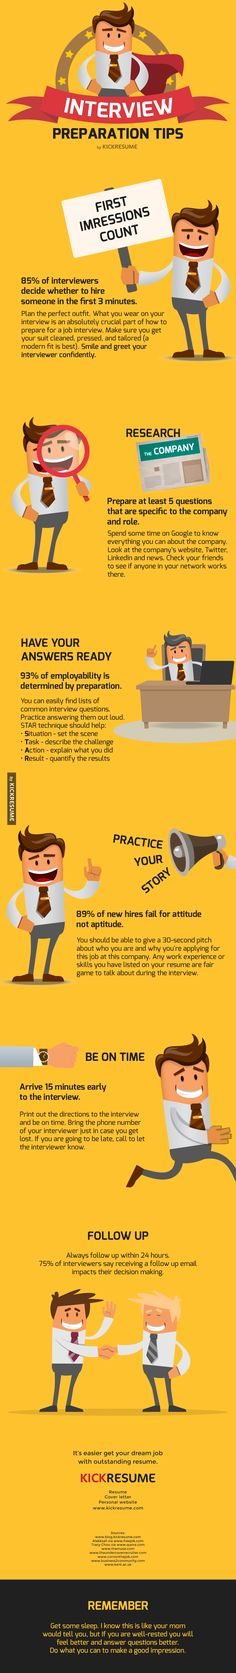 17 Best images about resumes that stand out on Pinterest Resume - how to prepare resume